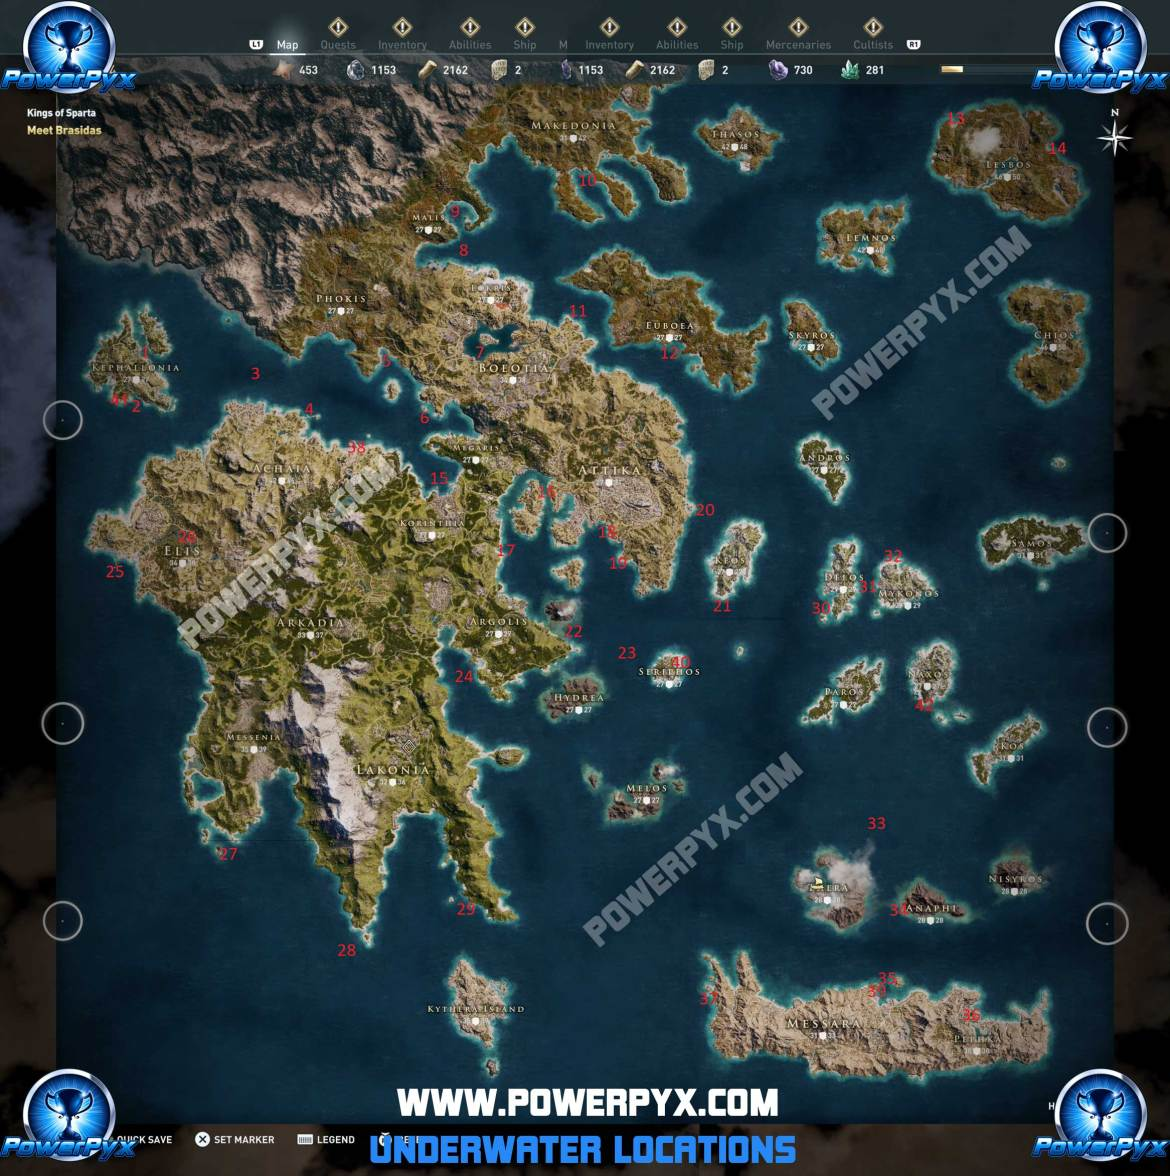 assassins creed odyssey underwater locations map - Assassin's Creed Odyssey, tutte le località subacquee